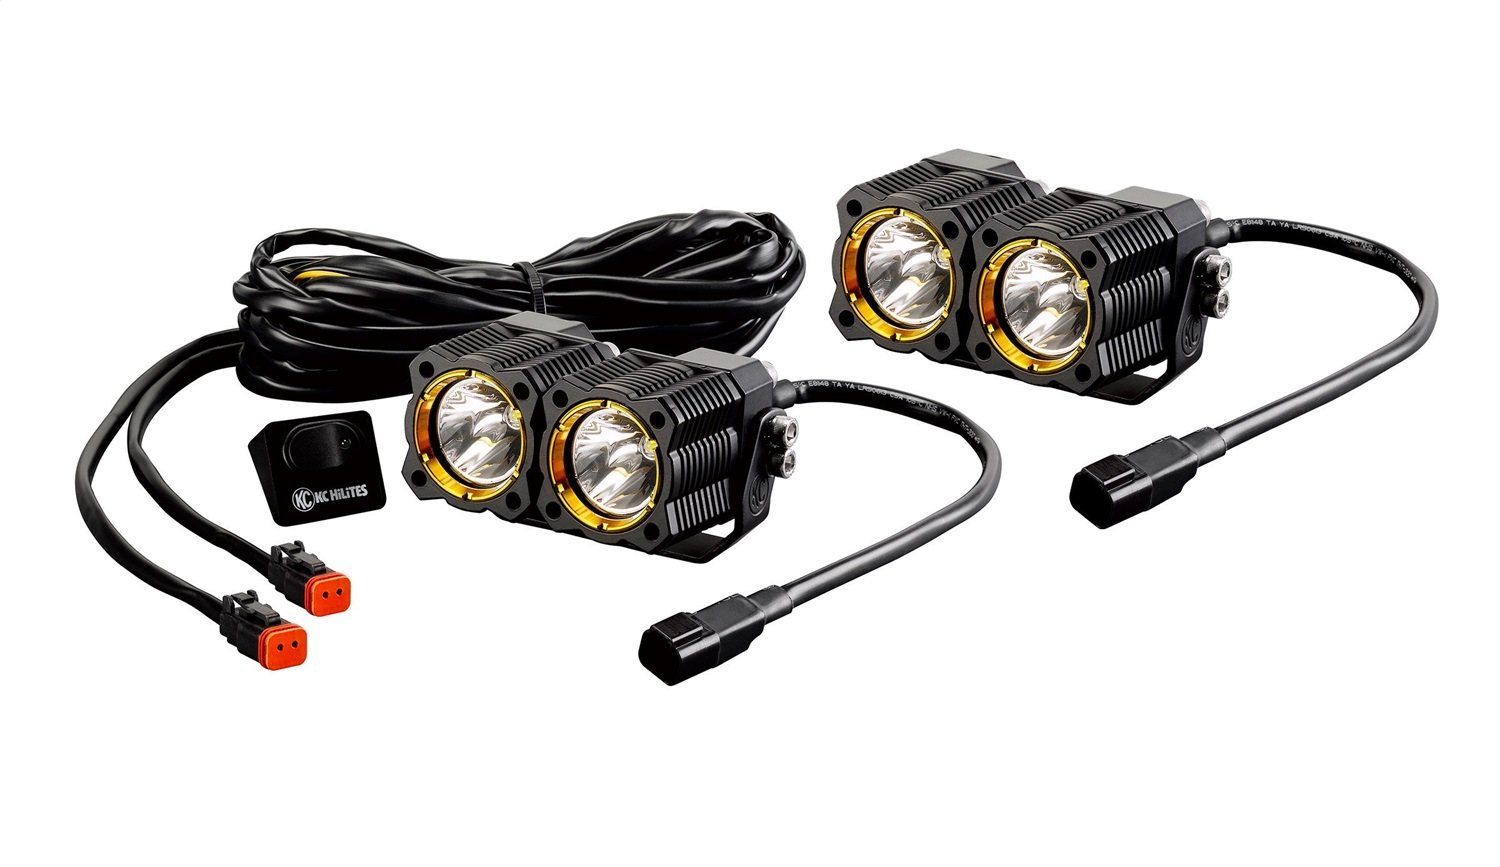 Kc Hilites Wiring Harness 269 Flex Led Single Spread Lighting System Pair Includes Switch And With Waterproof Connectors Automotive